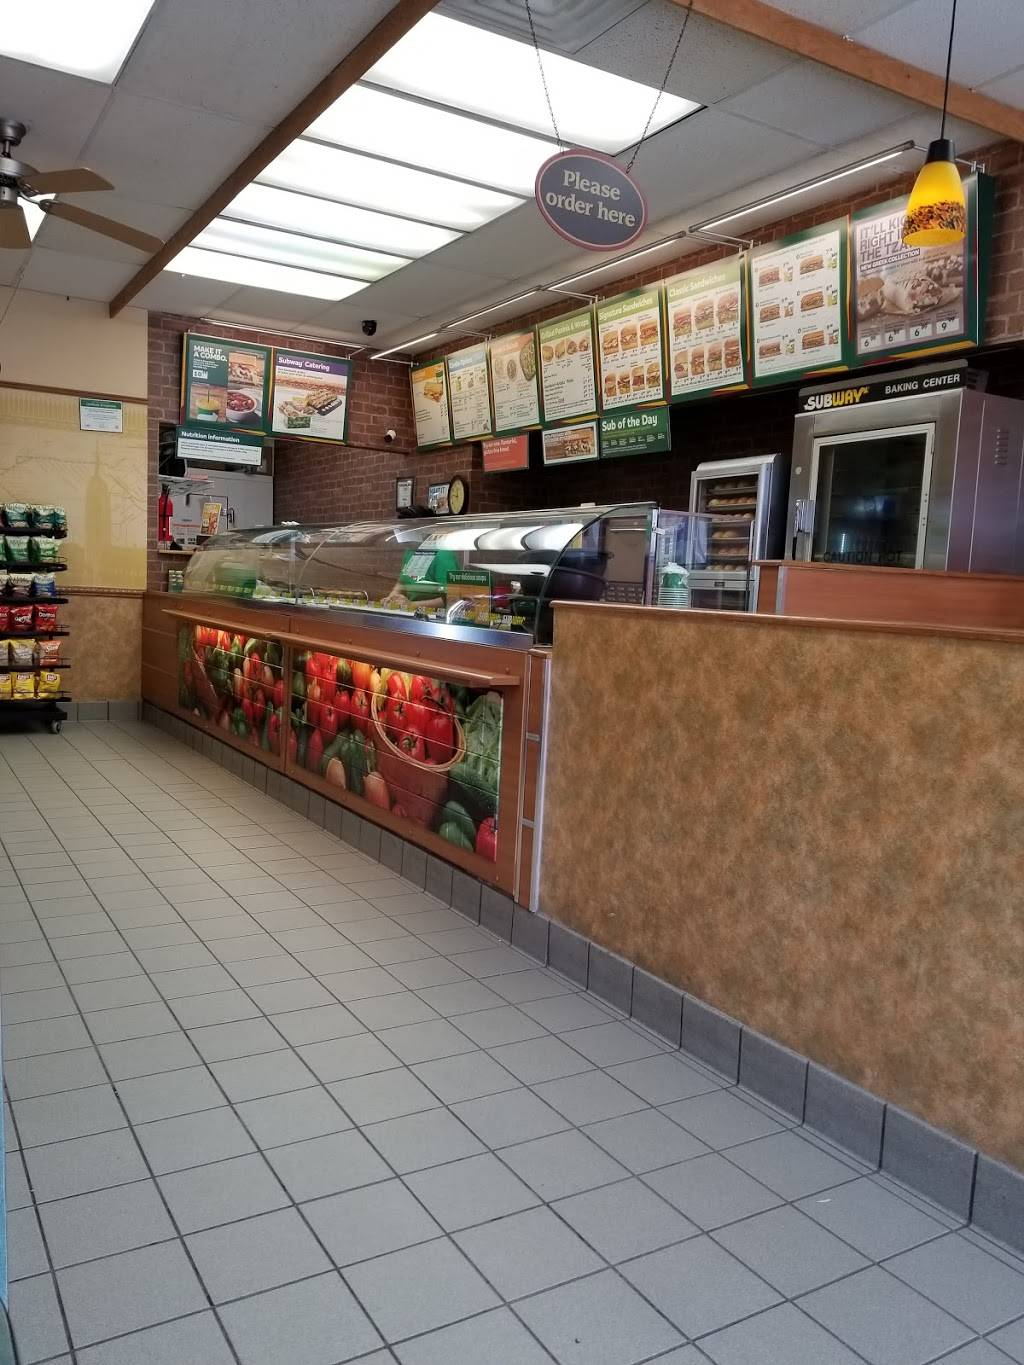 Subway | meal takeaway | Entertainment Centrum, 2085 Winston Park Dr, Oakville, ON L6H 6P5, Canada | 9058293340 OR +1 905-829-3340